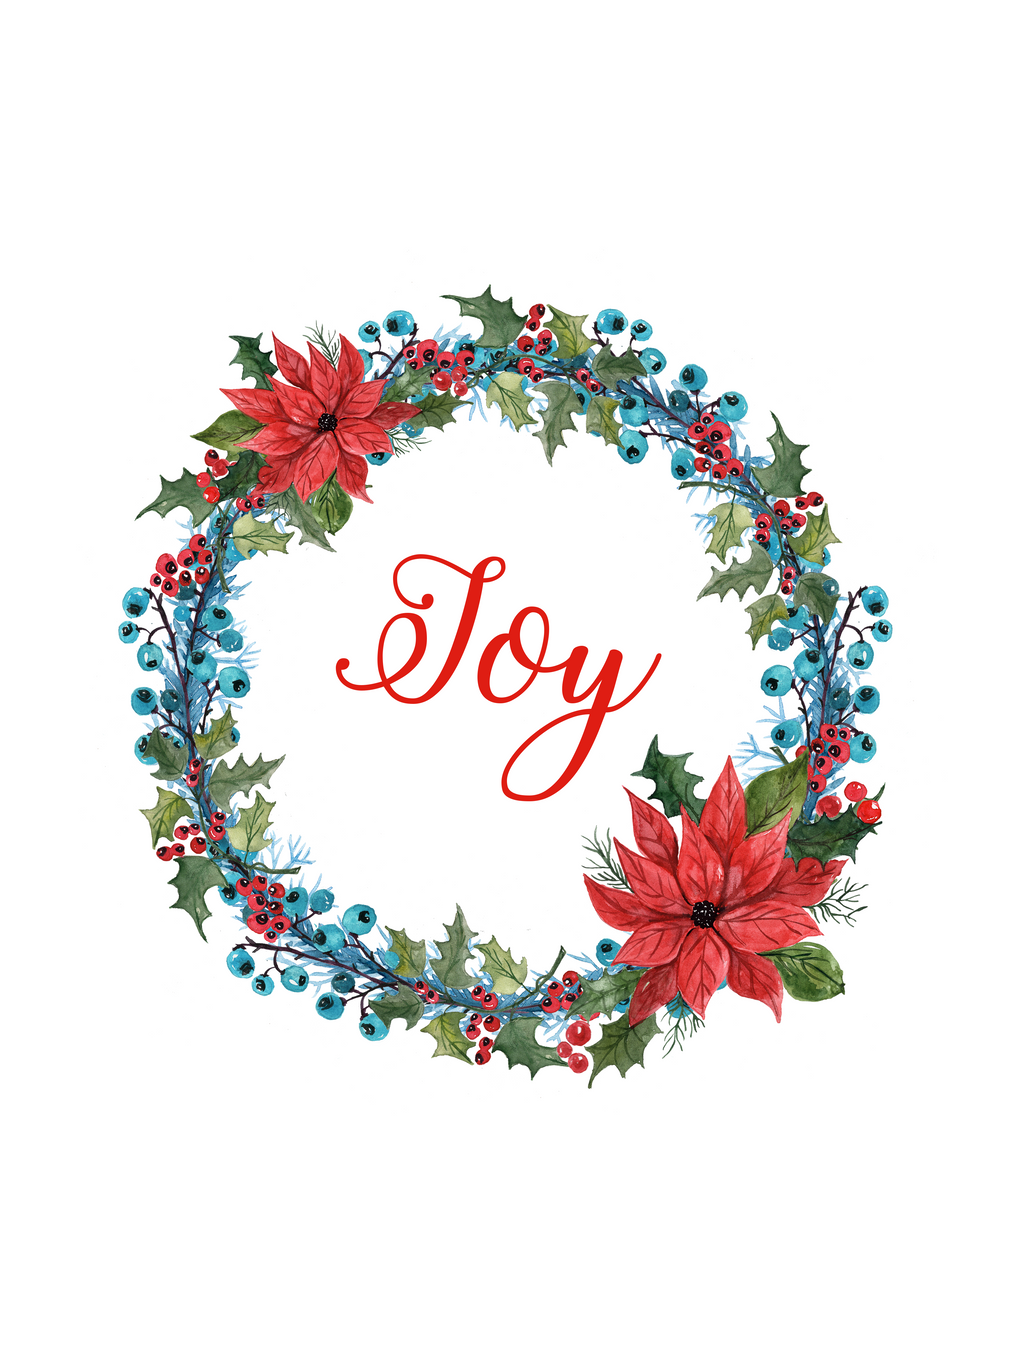 A3 / A2 Printed Poster Christmas Joy Watercolour Holly Wreath - Cutting Image